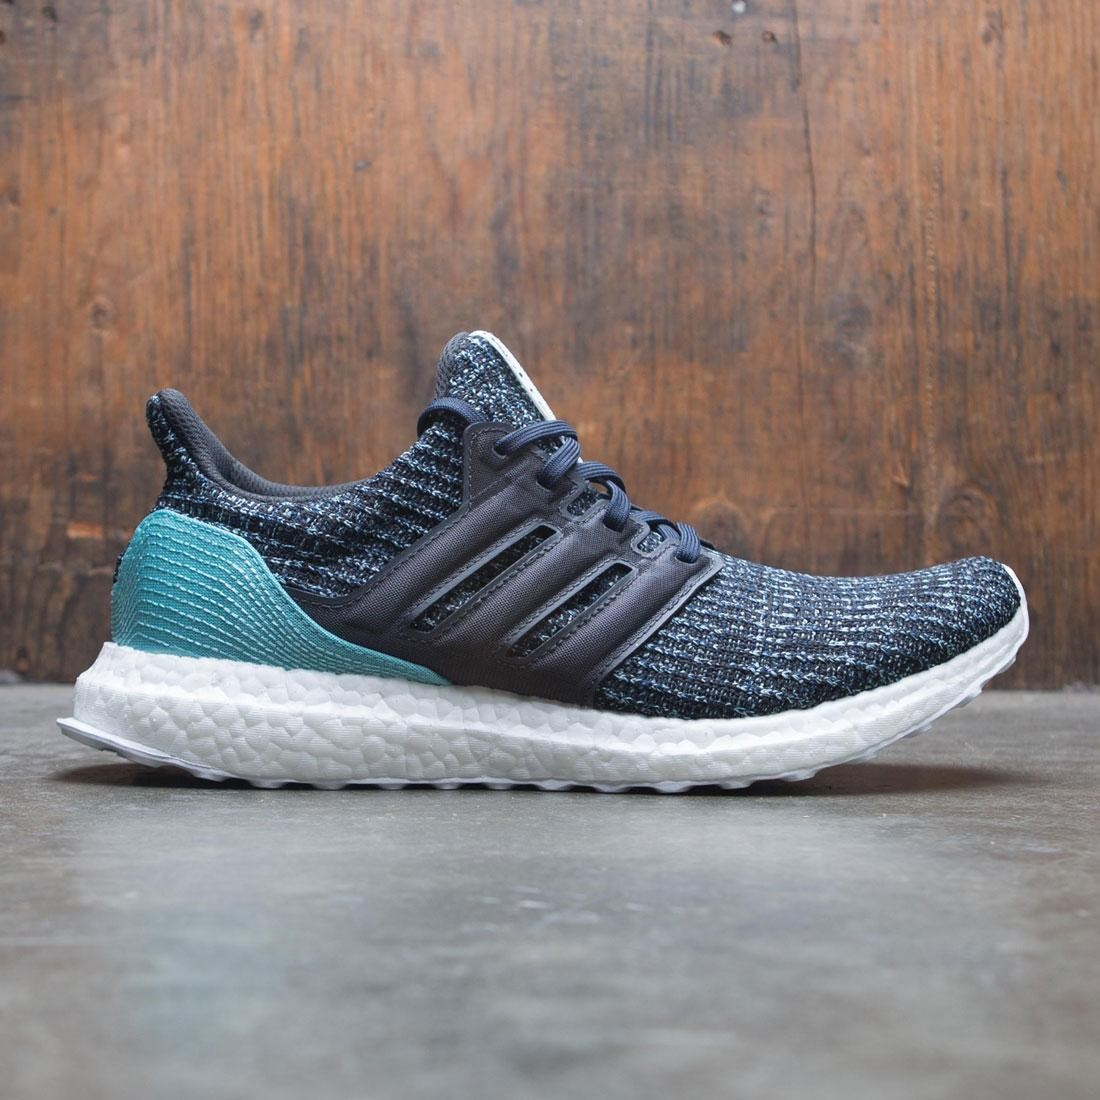 2fcbce360a9 Adidas Men UltraBOOST Parley gray carbon blue spirit